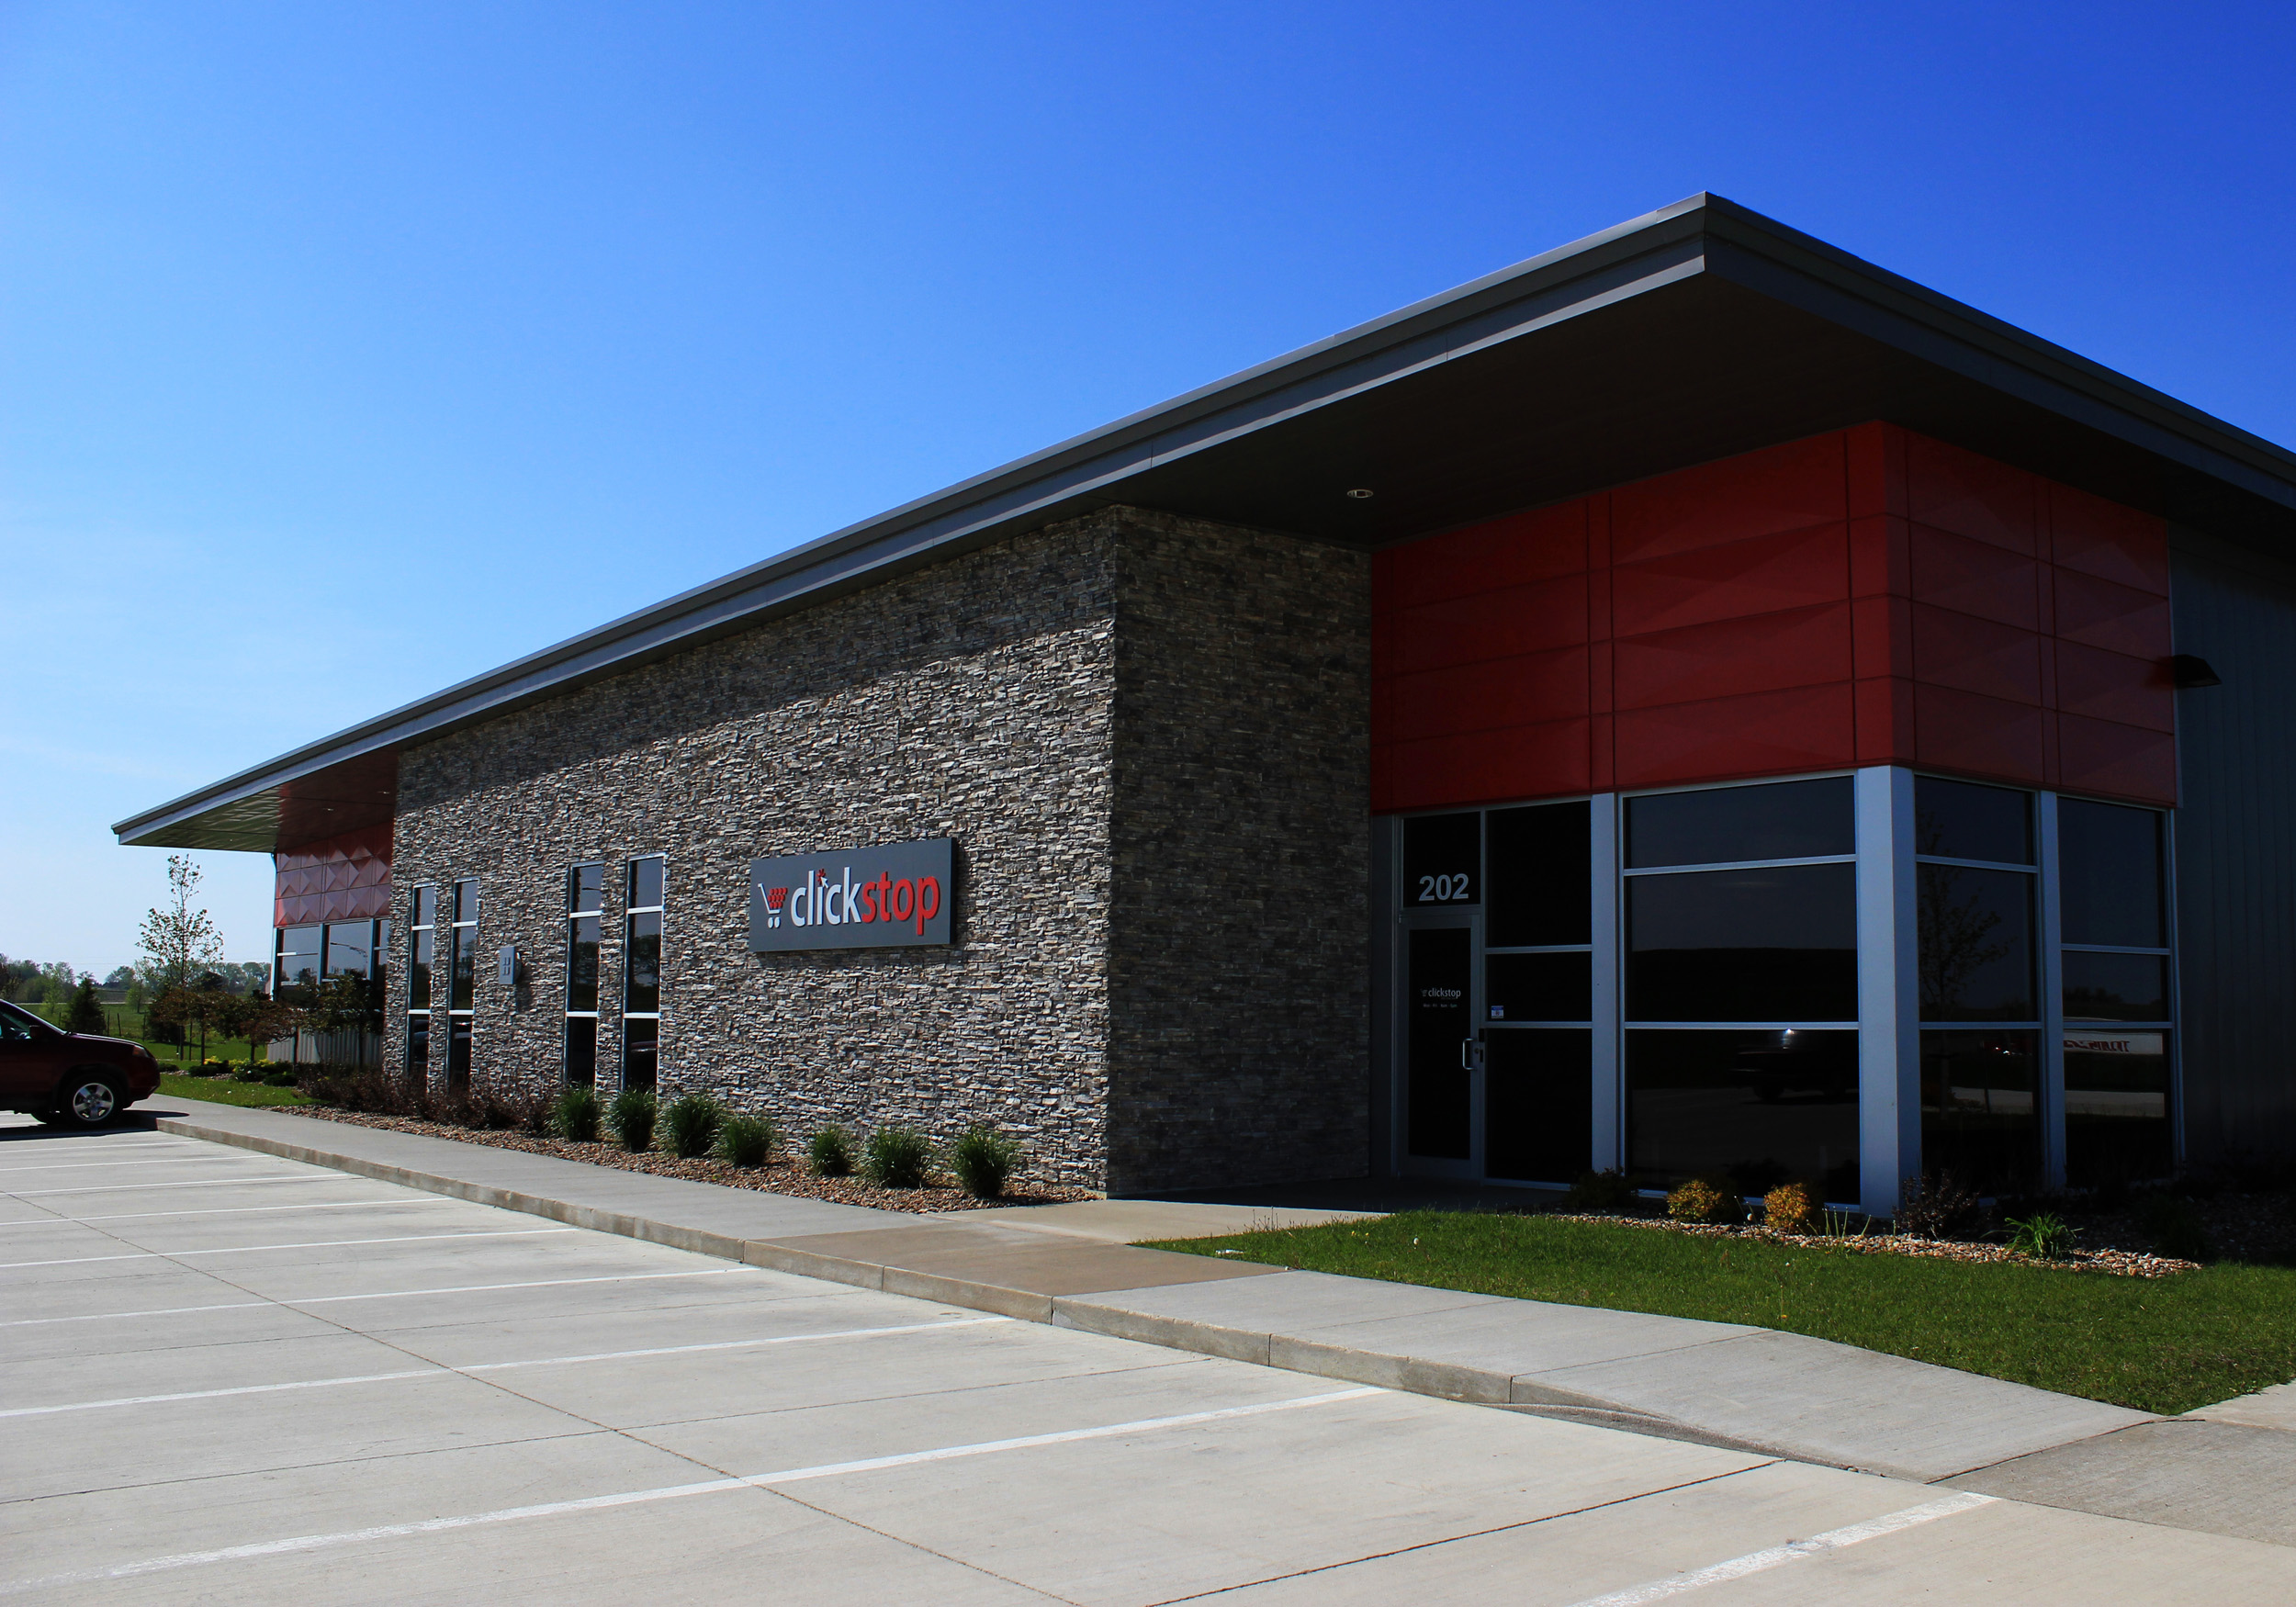 Clickstop's Urbana-based headquarters